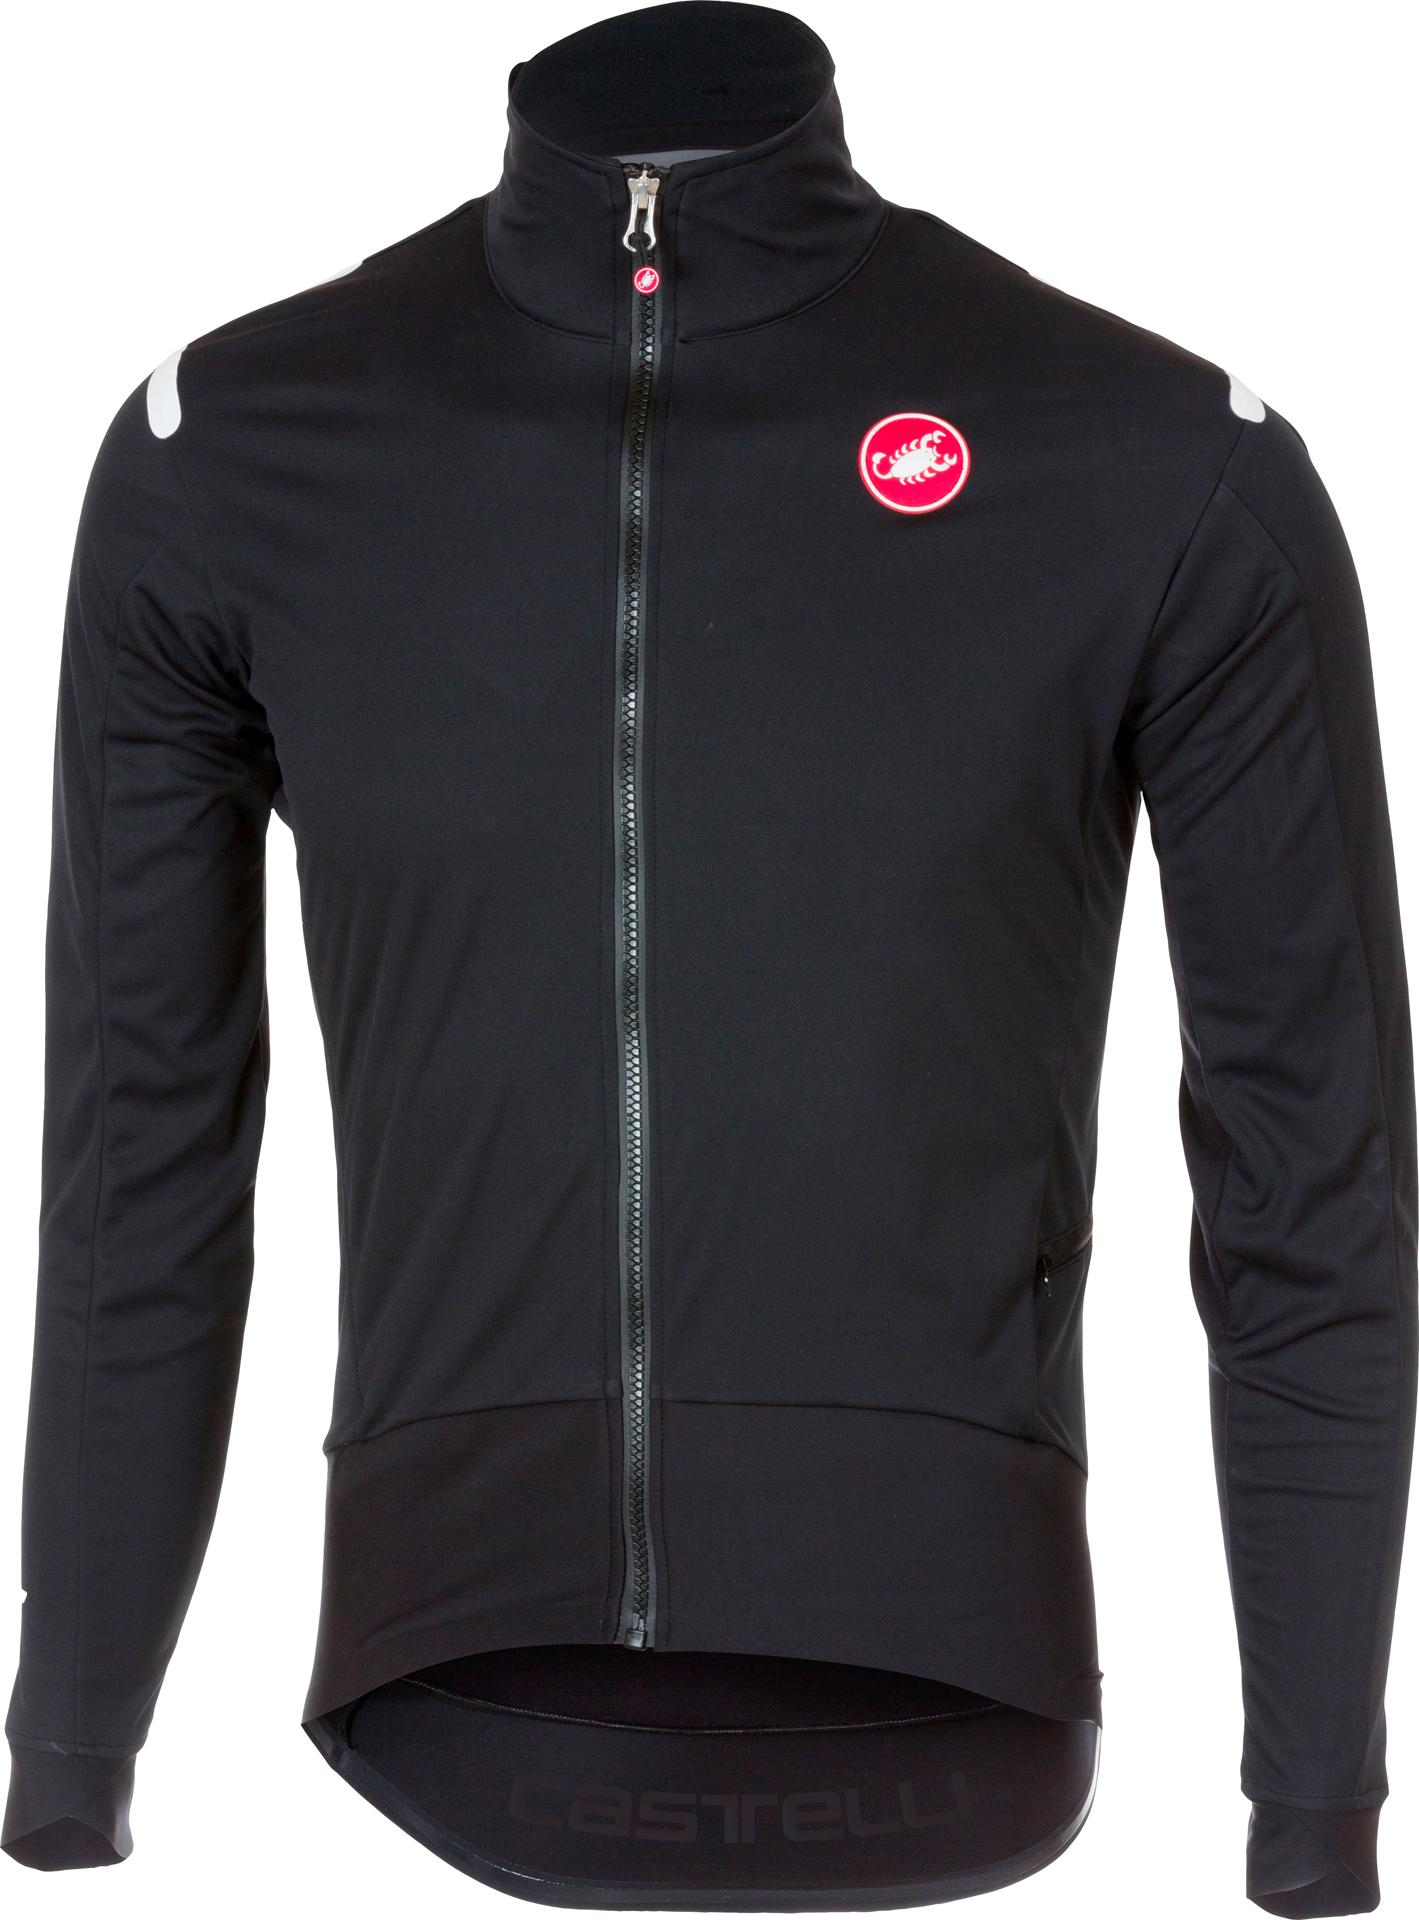 Castelli Fietsshirt lange mouwen Heren Zwart Zwart / CA Alpha Ros Light Jacket Light Black/Black